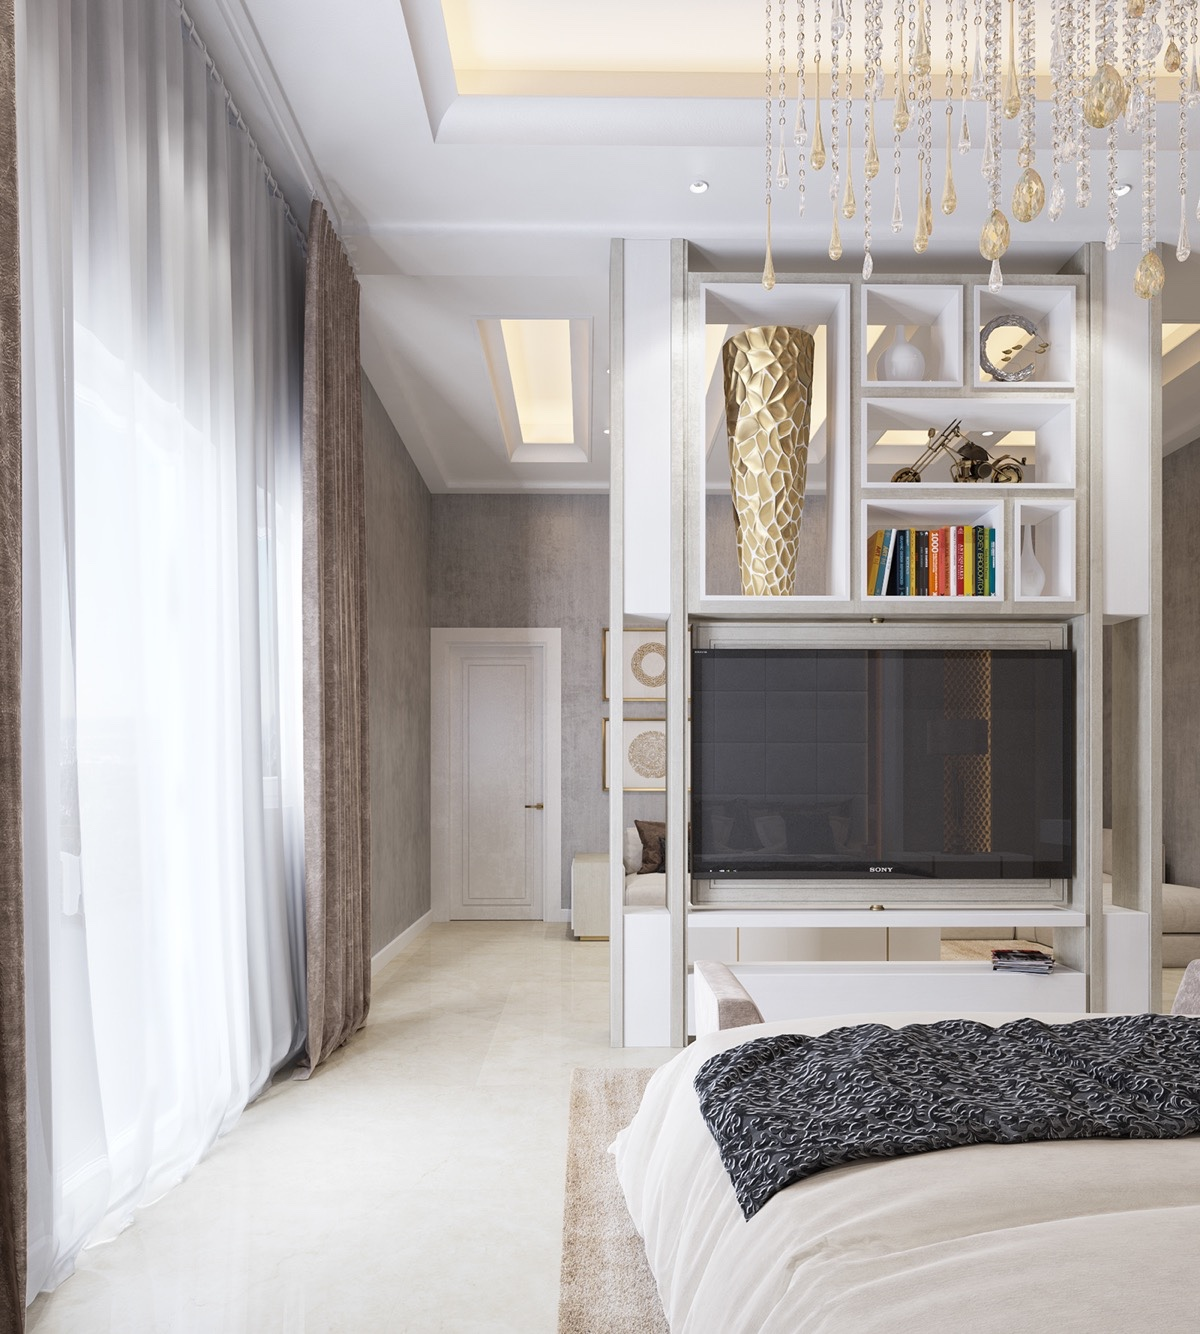 Incredible Master Suite - 6 master suits to inspire you